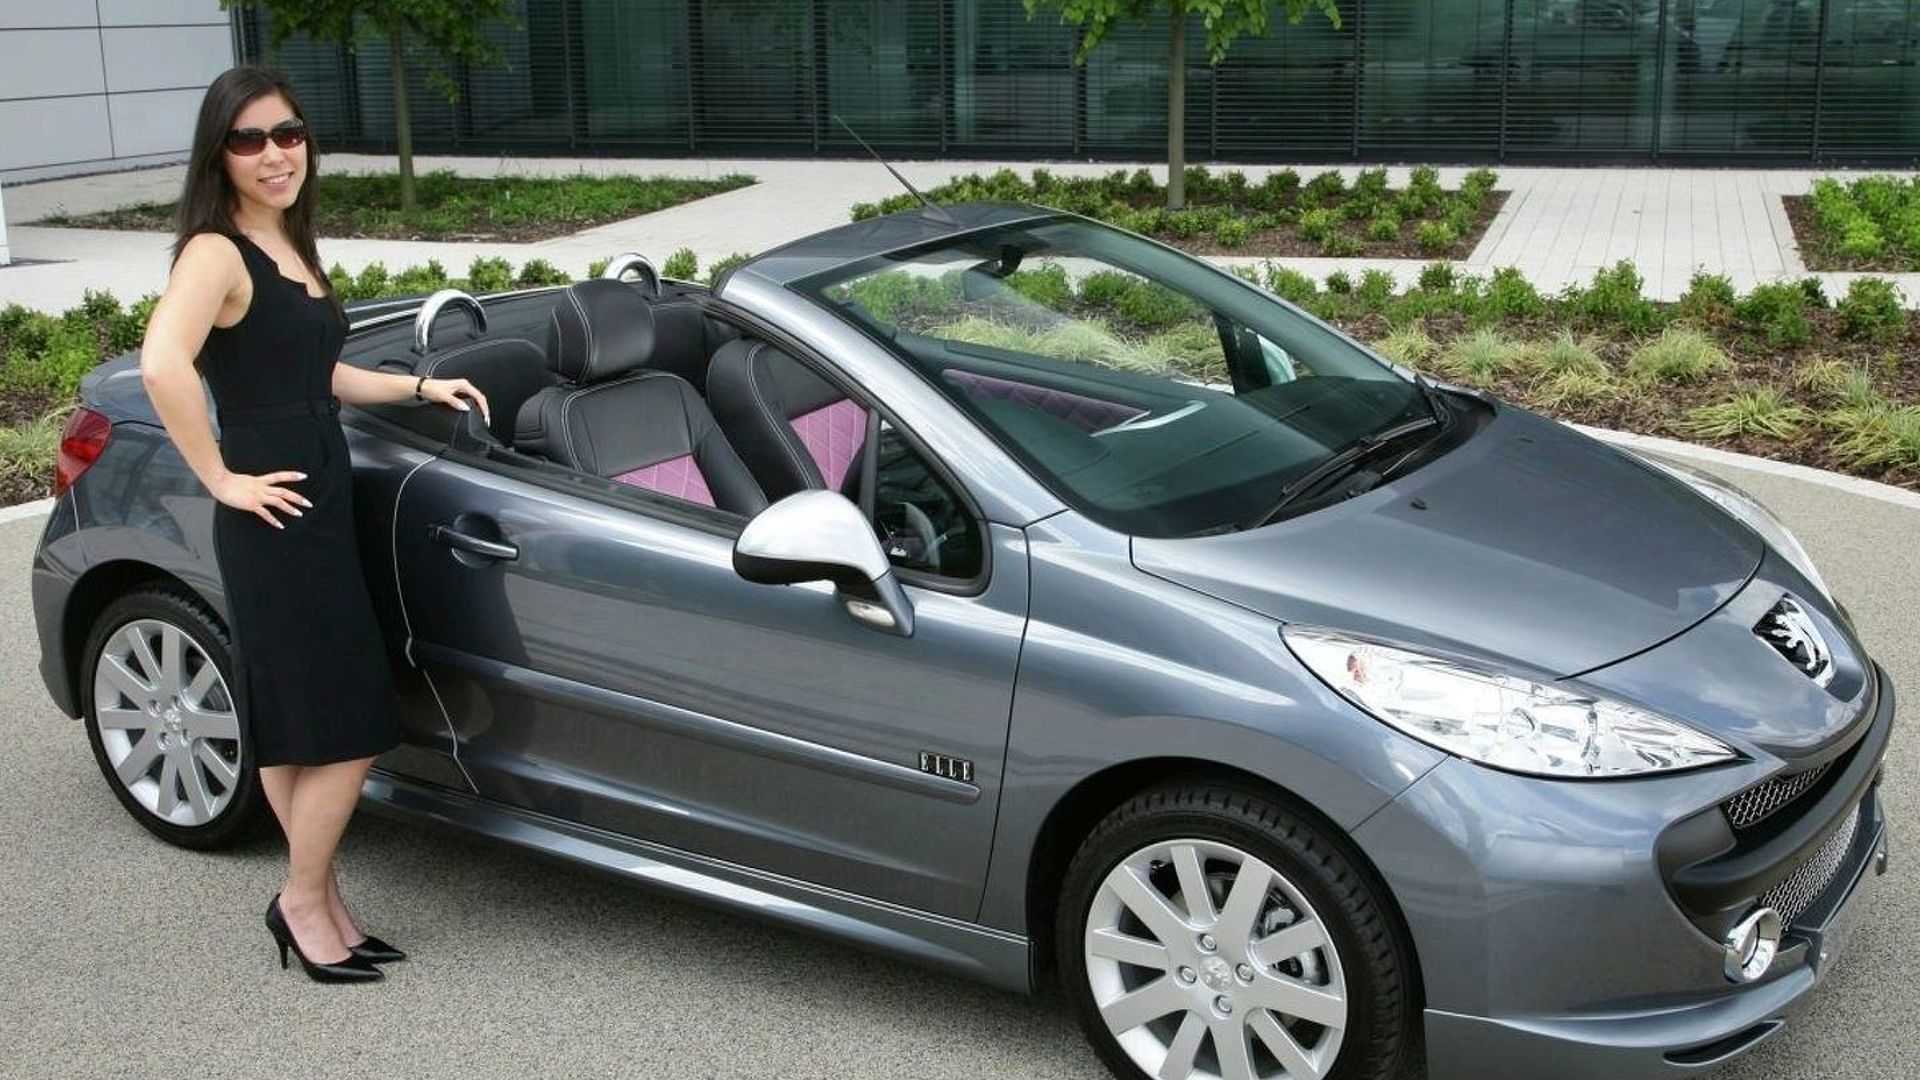 Peugeot 207 Cc Elle Special Edition Uk